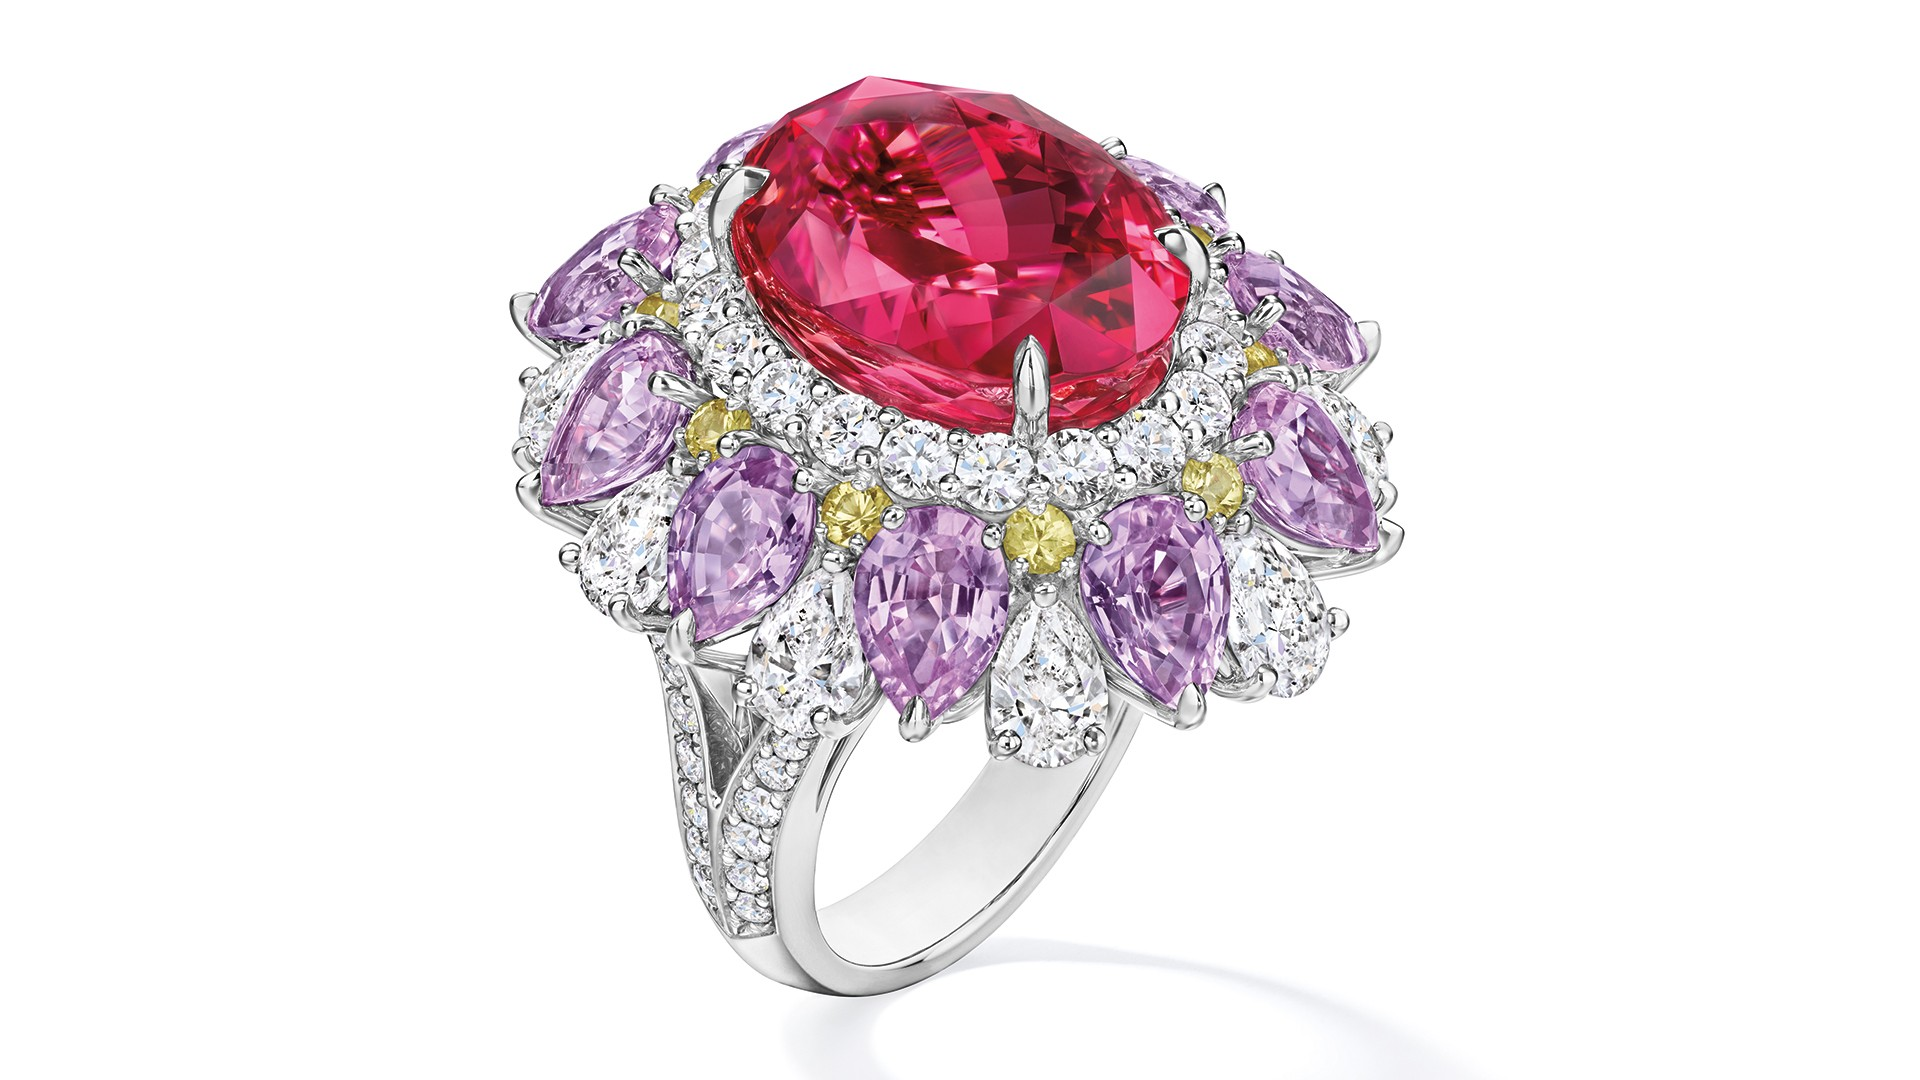 Harry Winston Winston Candy cocktail ring